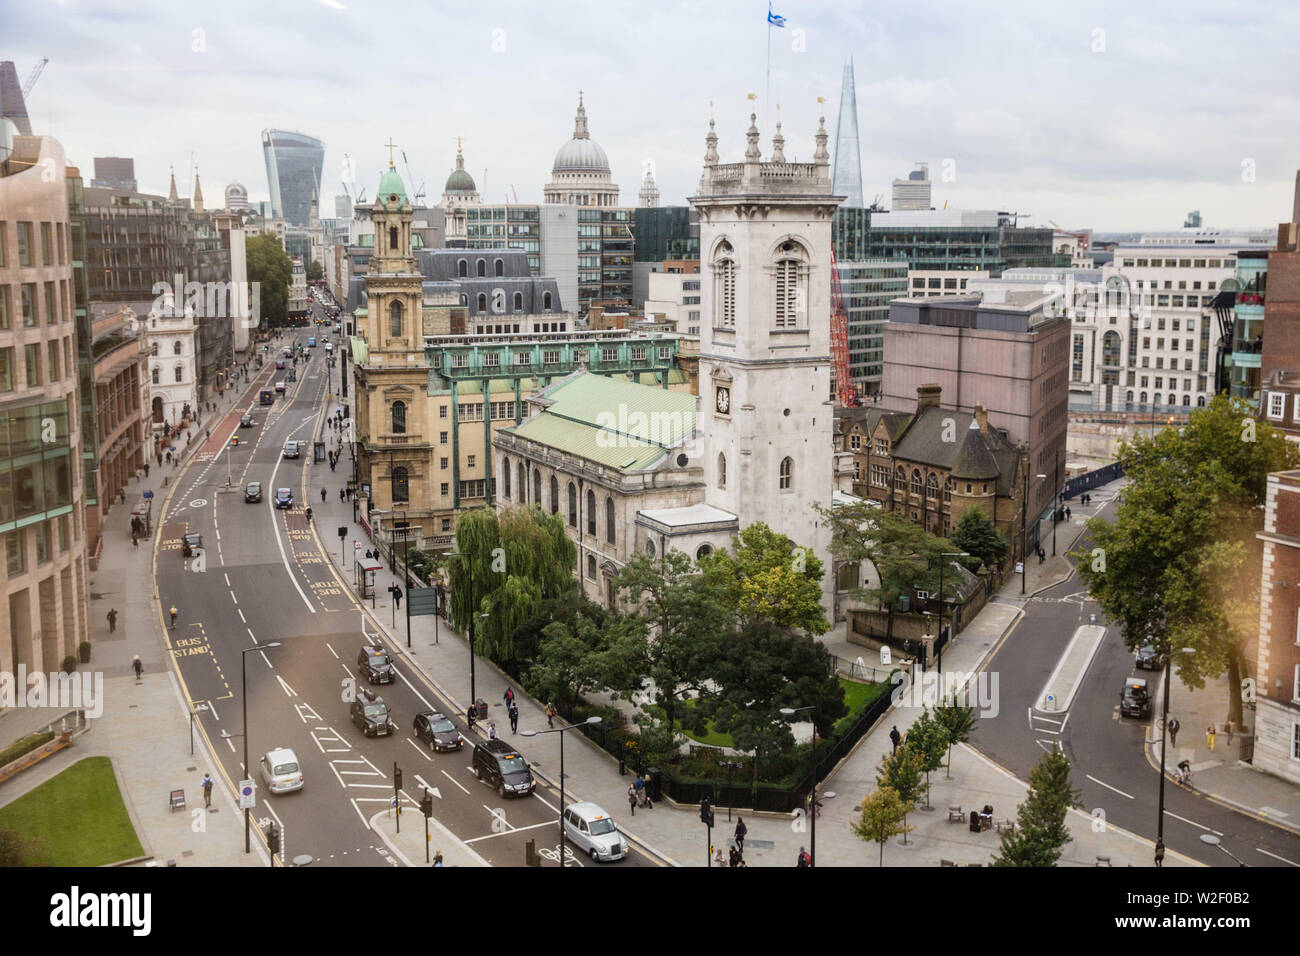 St Andrew Holborn The largest Anglican parish church designed by Christopher Wren now also a striking events venue. Stock Photo